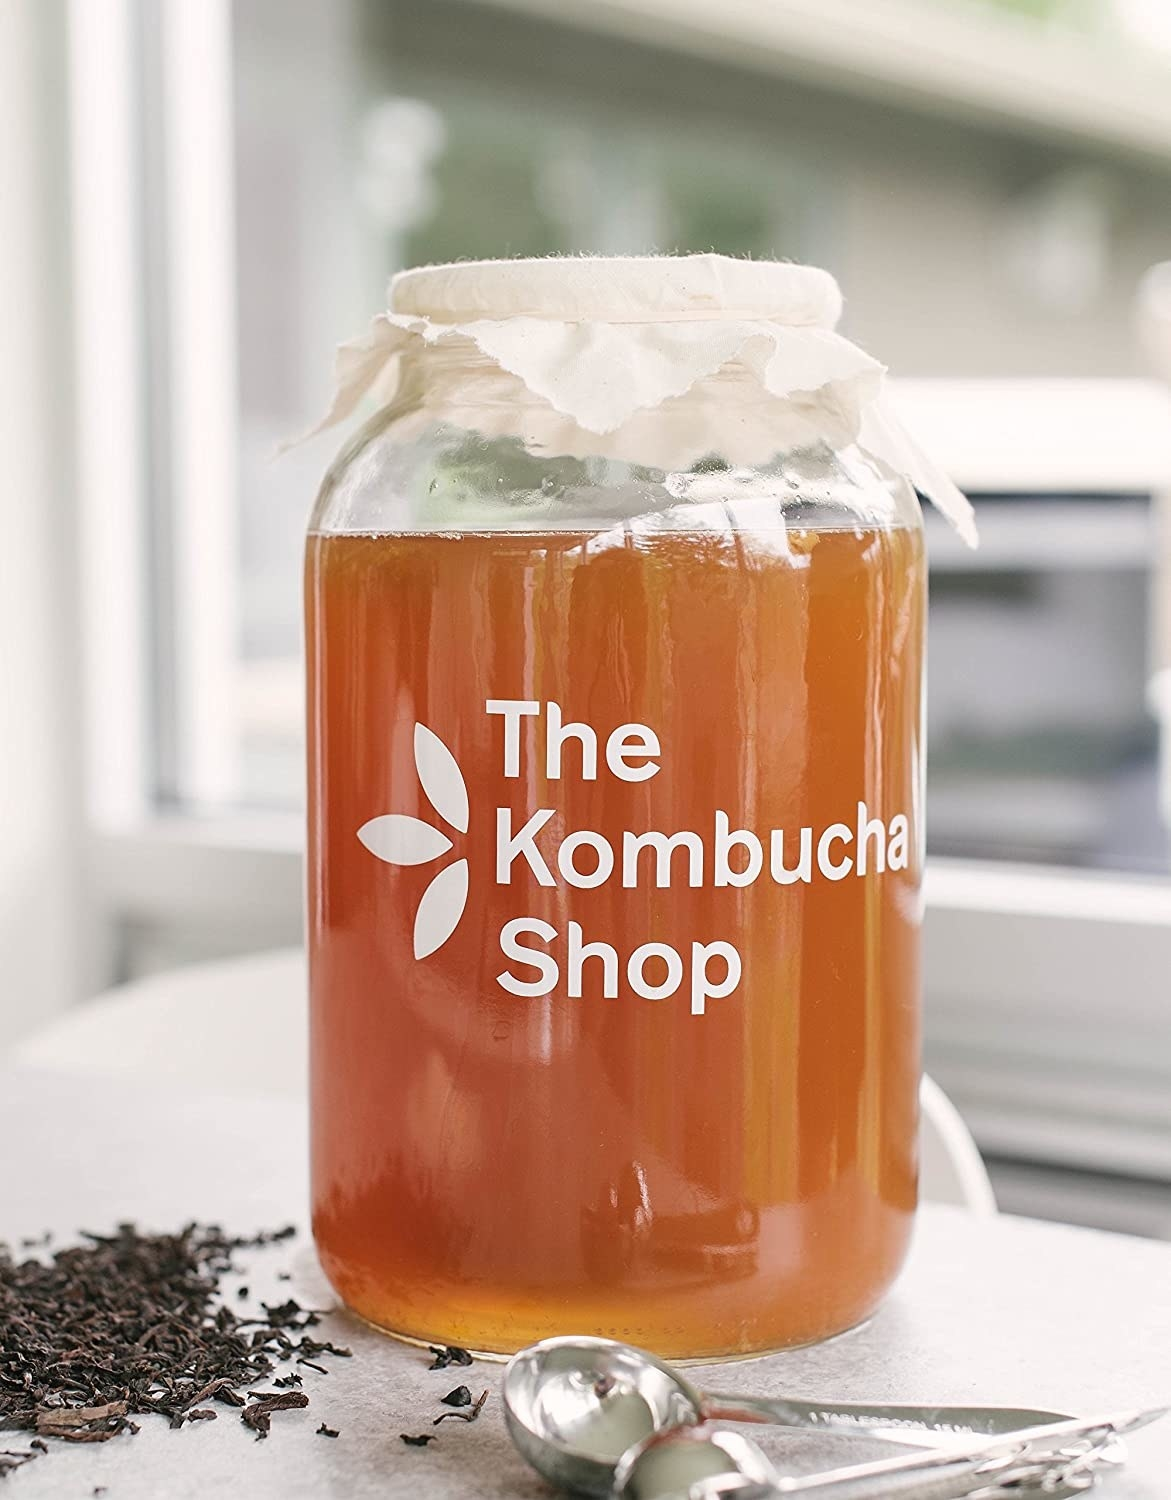 The gallon jar from the kit with kombucha in it